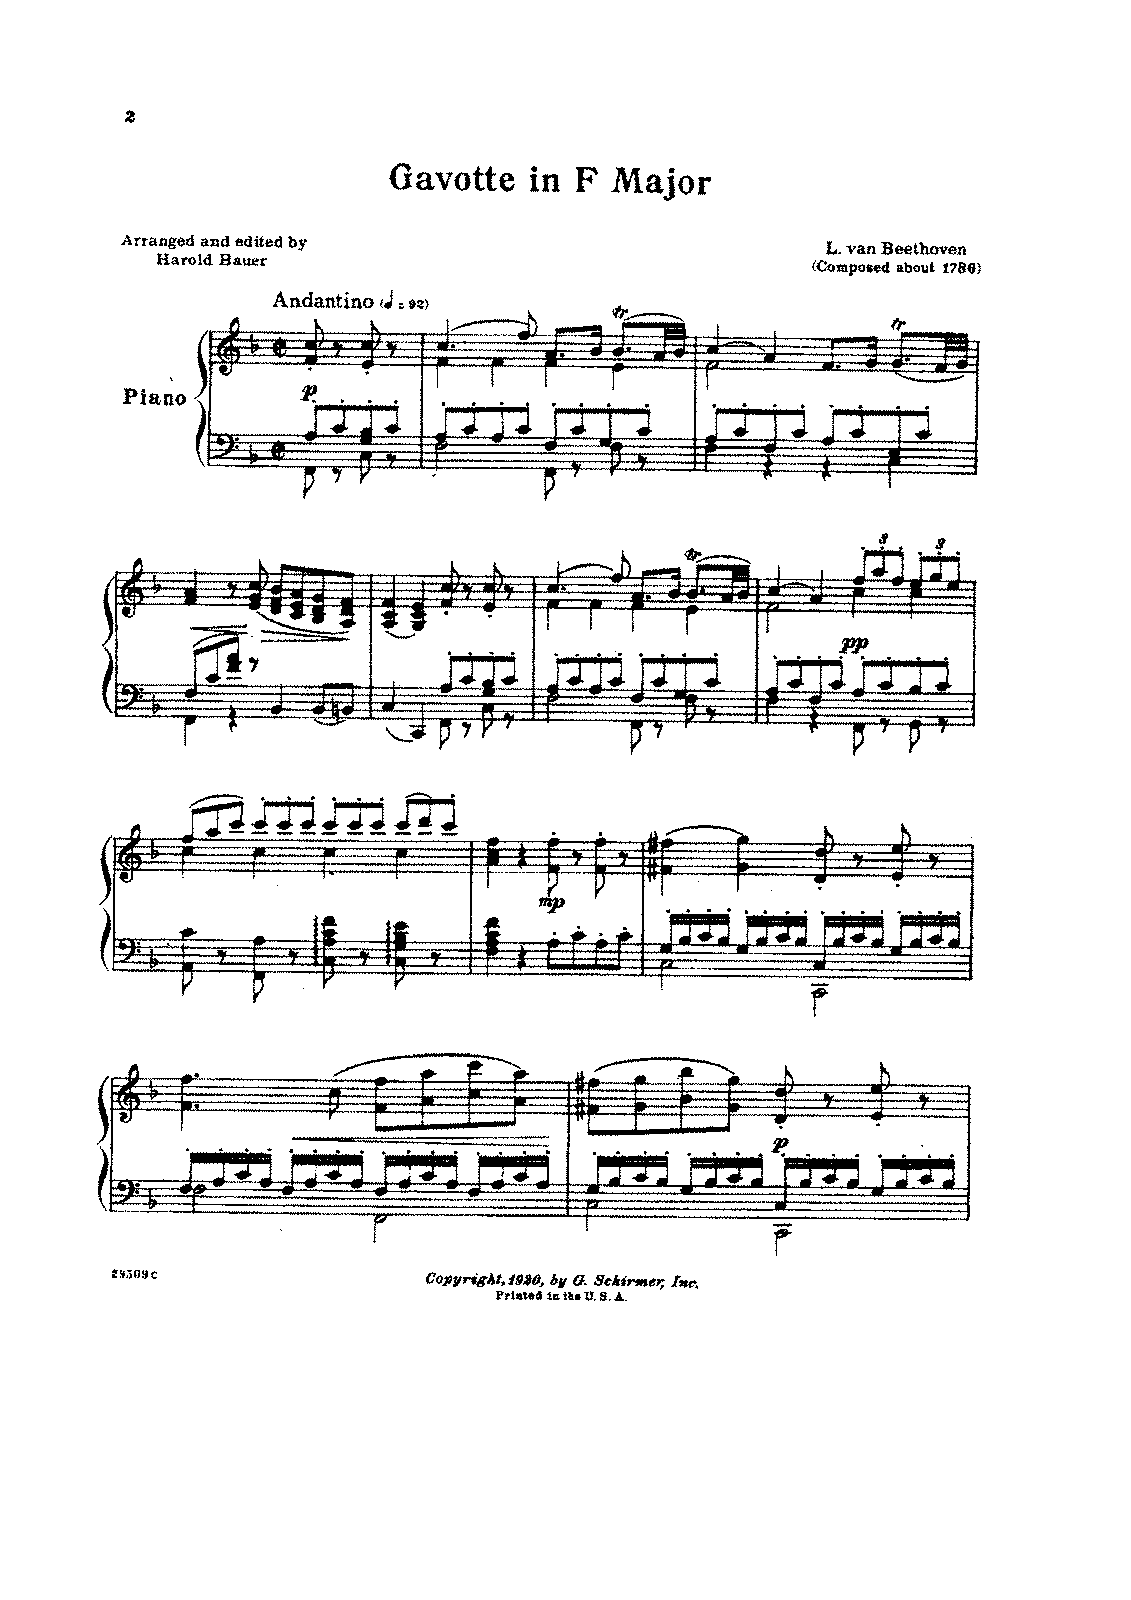 Beethoven-Bauer Gavotte in F.pdf